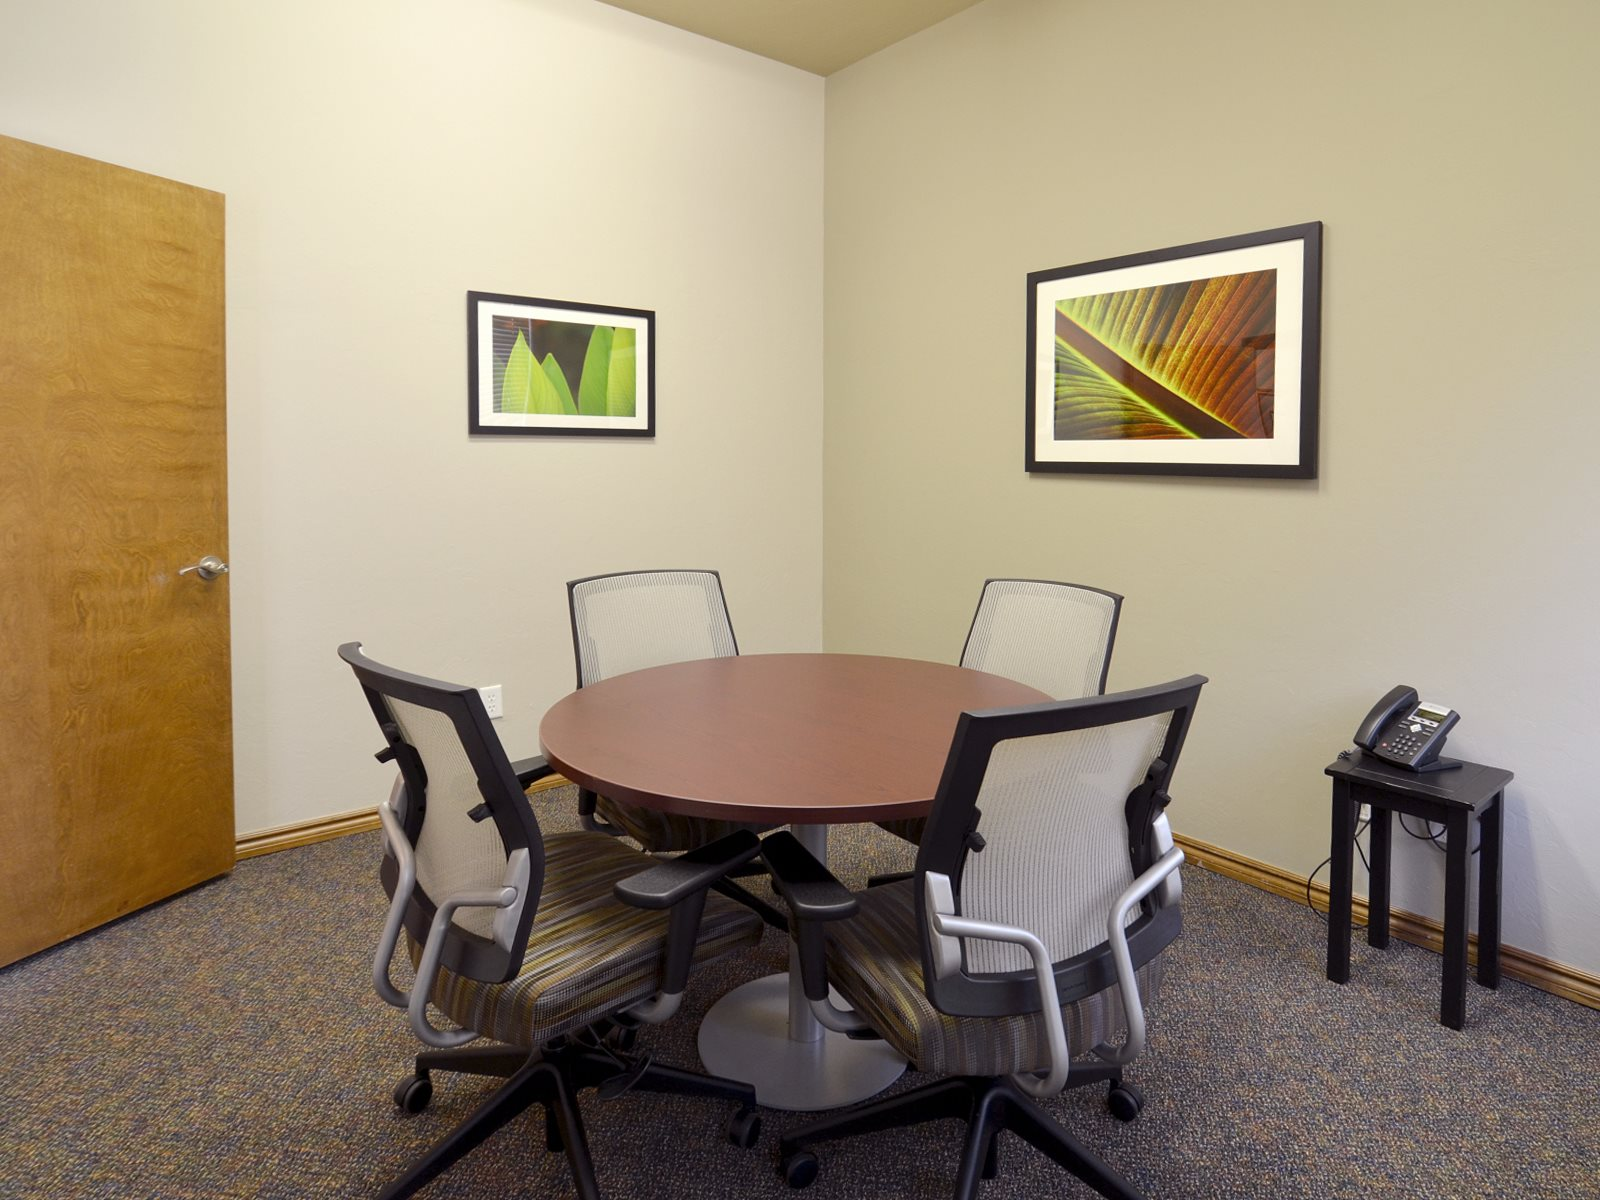 Http Www Pcexecutiveservices Com Services Meeting Rooms